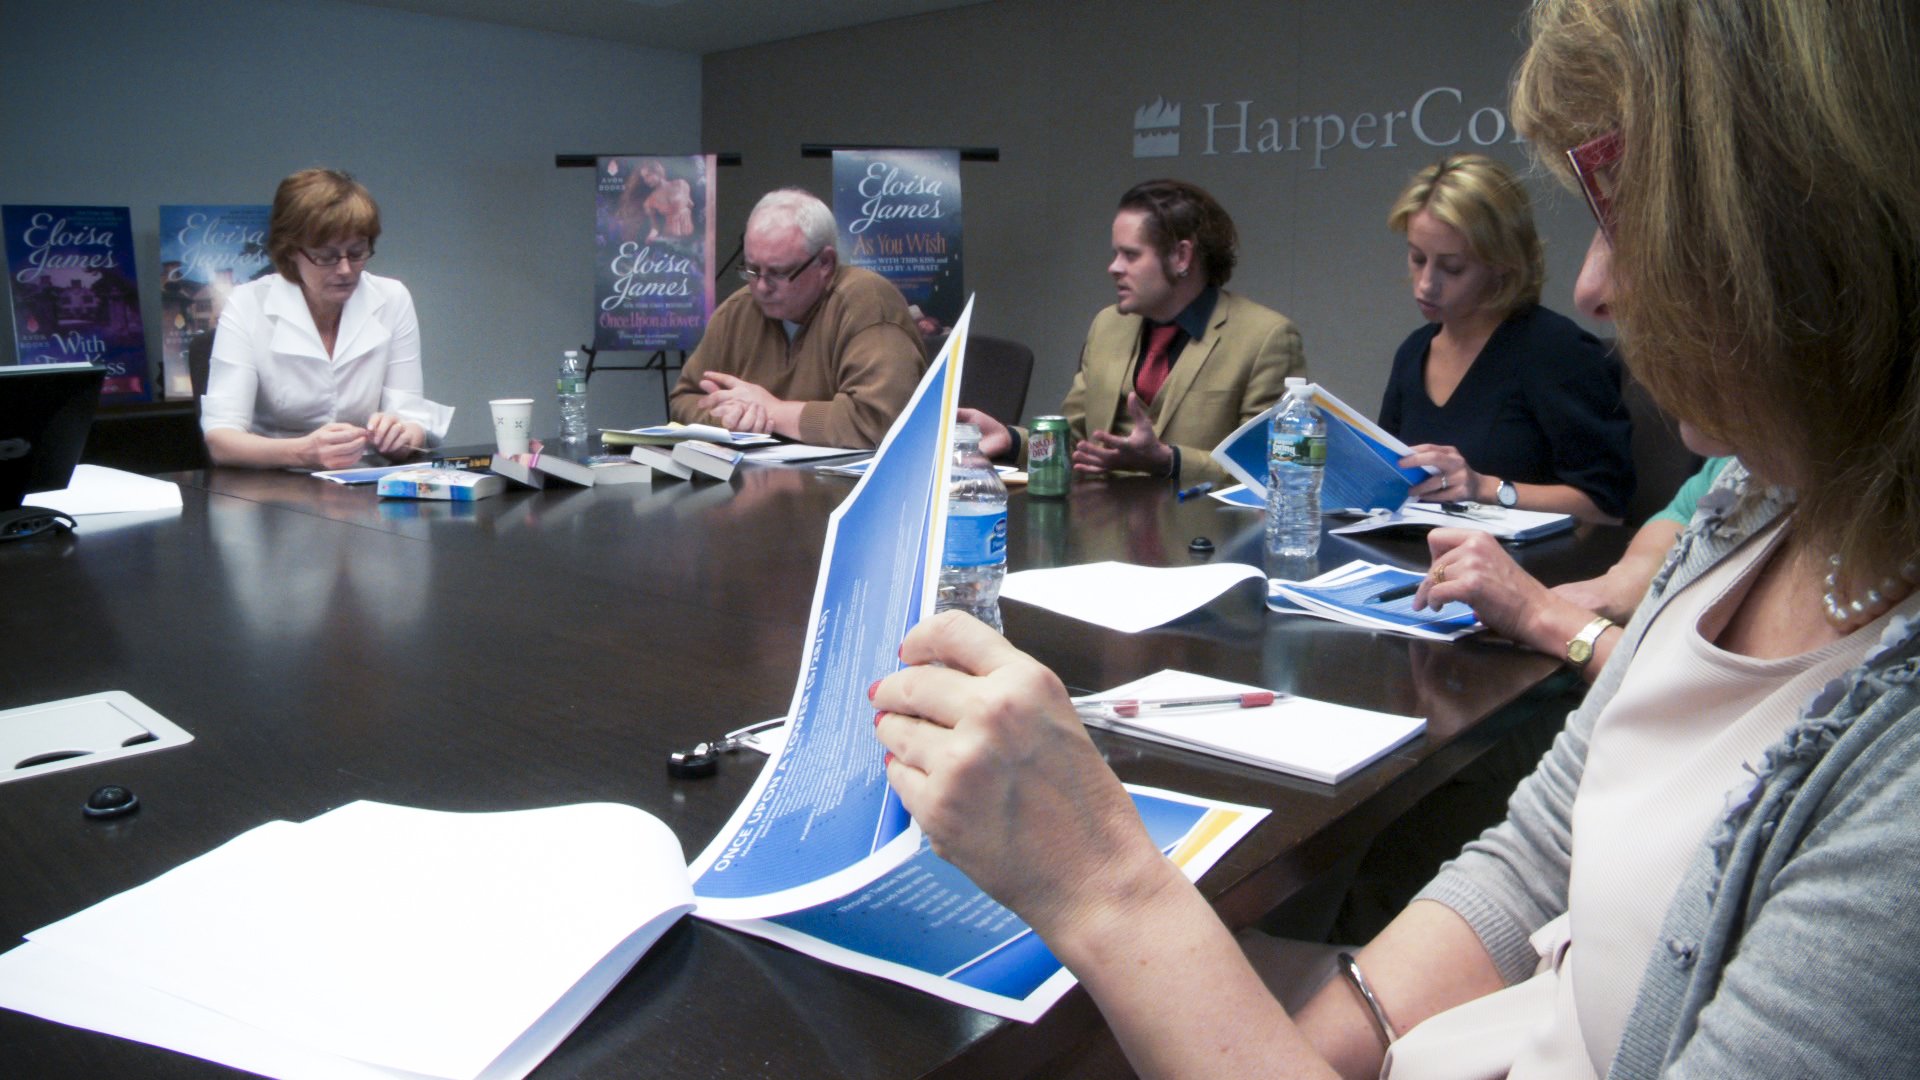 A marketing meeting at HarperCollins